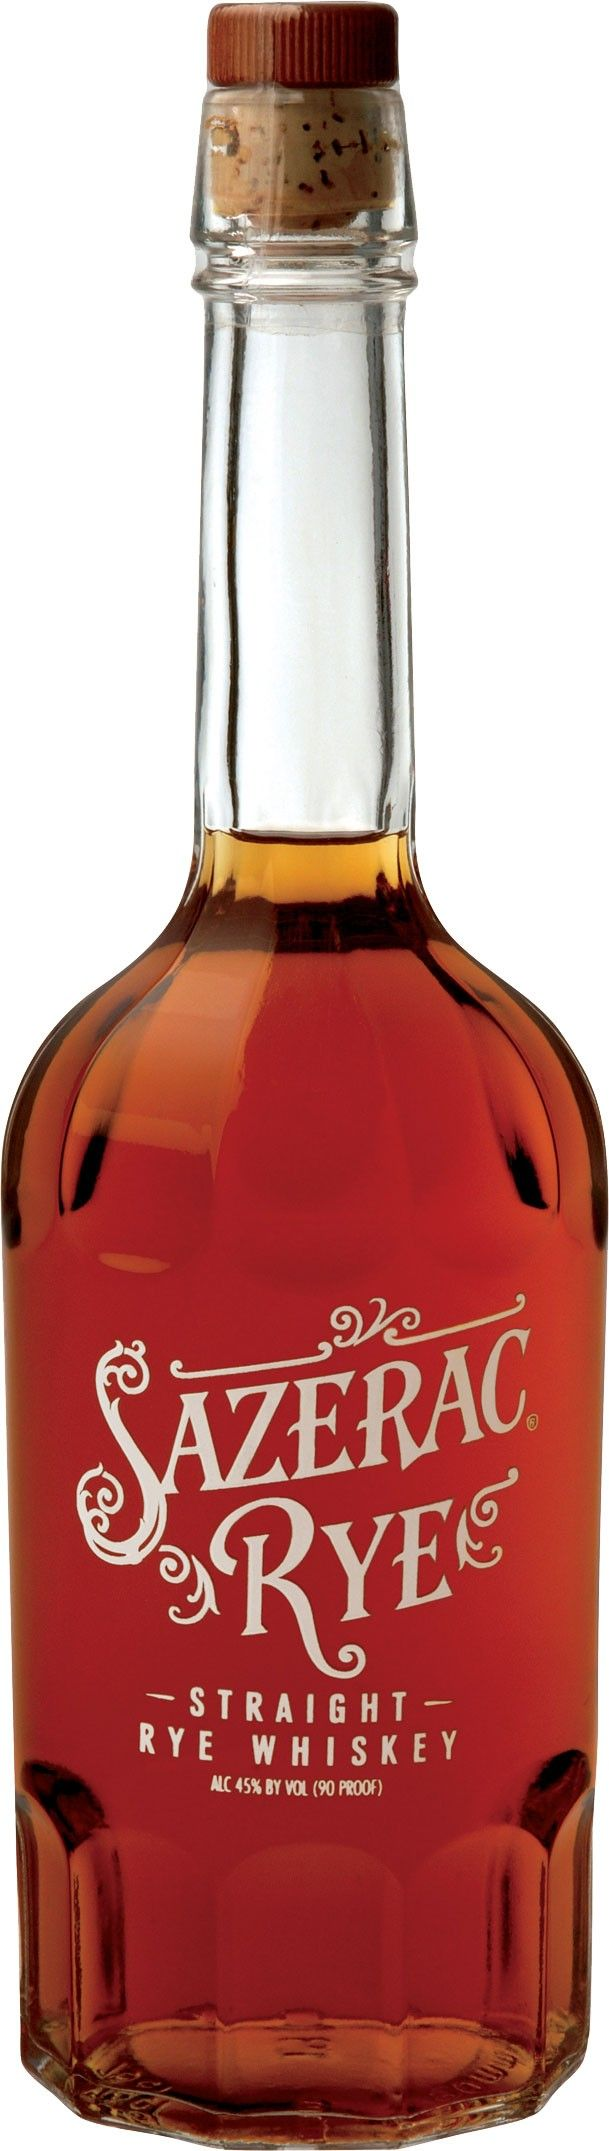 Aged for a minimum of six years, this whiskey earned a score of 95 points from Wine Enthusiast, which called it a